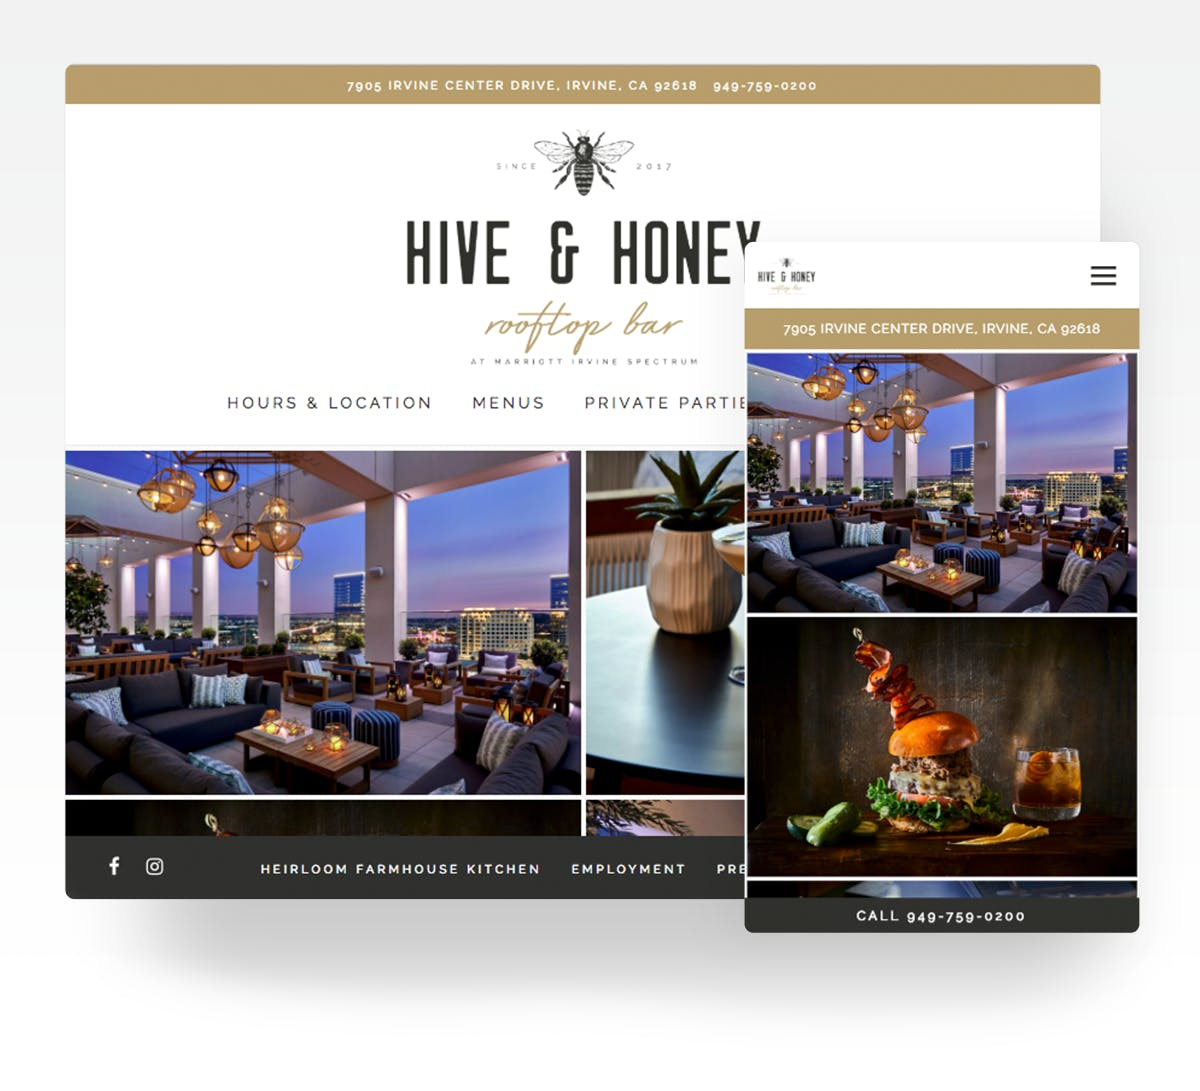 Hive and Honey website